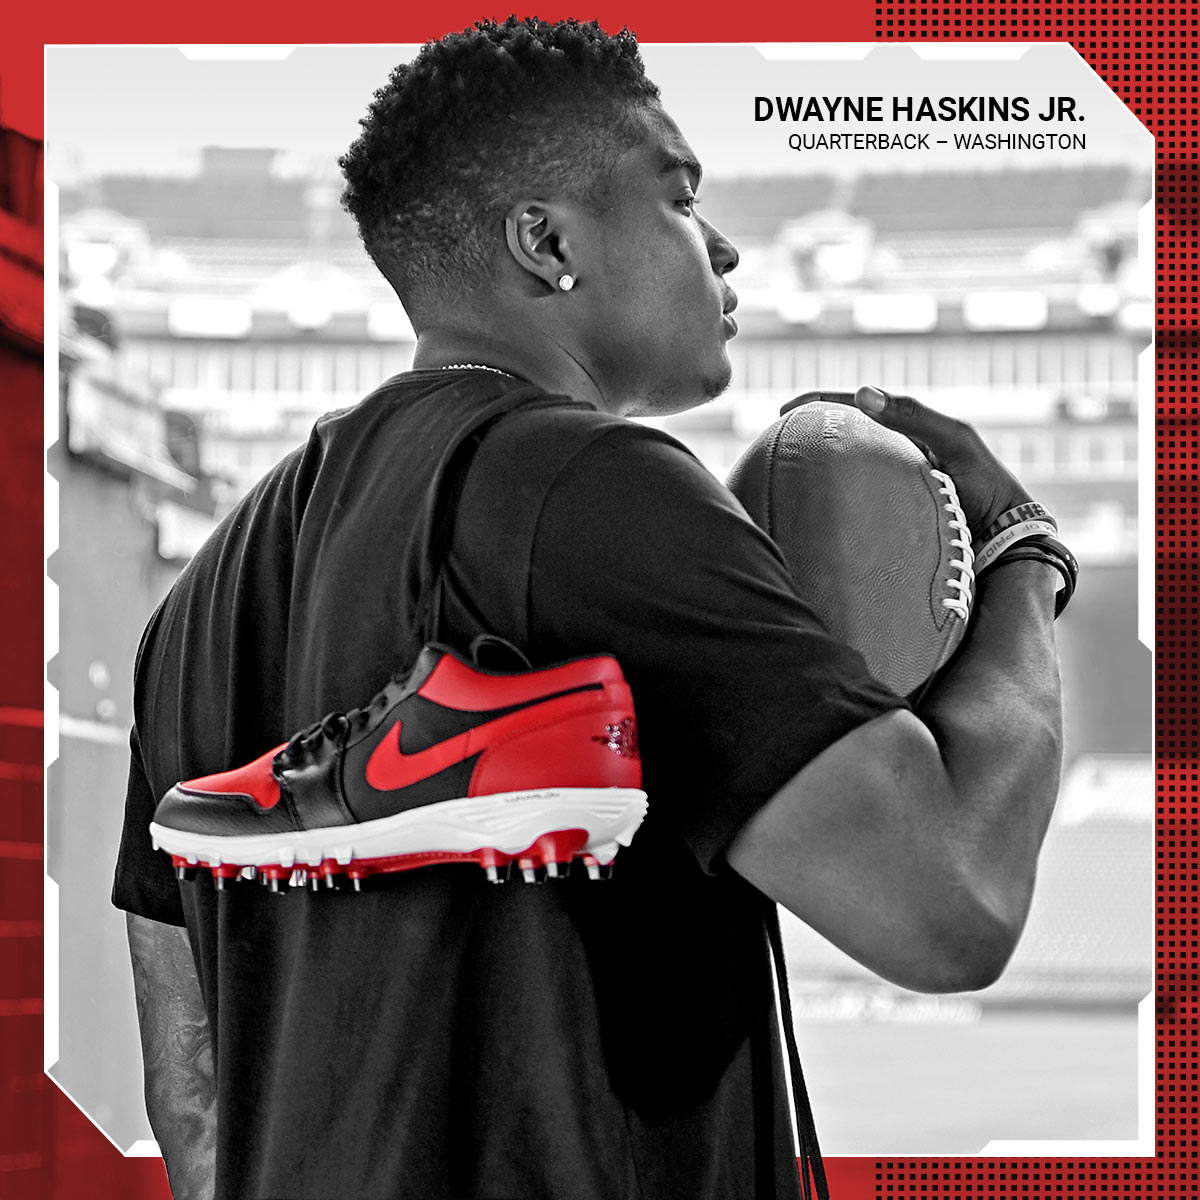 Dwayne Haskins Jr. looking at football field with cleats hung over shoulder